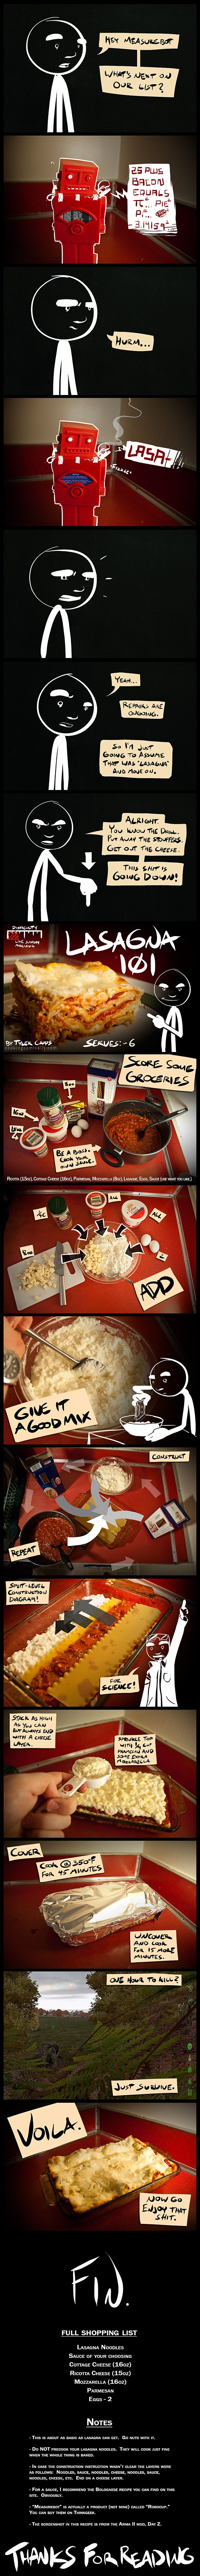 Lasagna 101- Cooking Comically. If you have time to kill, go read this blog, each recipe. Whether or not it sounds appetizing. Seriously. Do it.